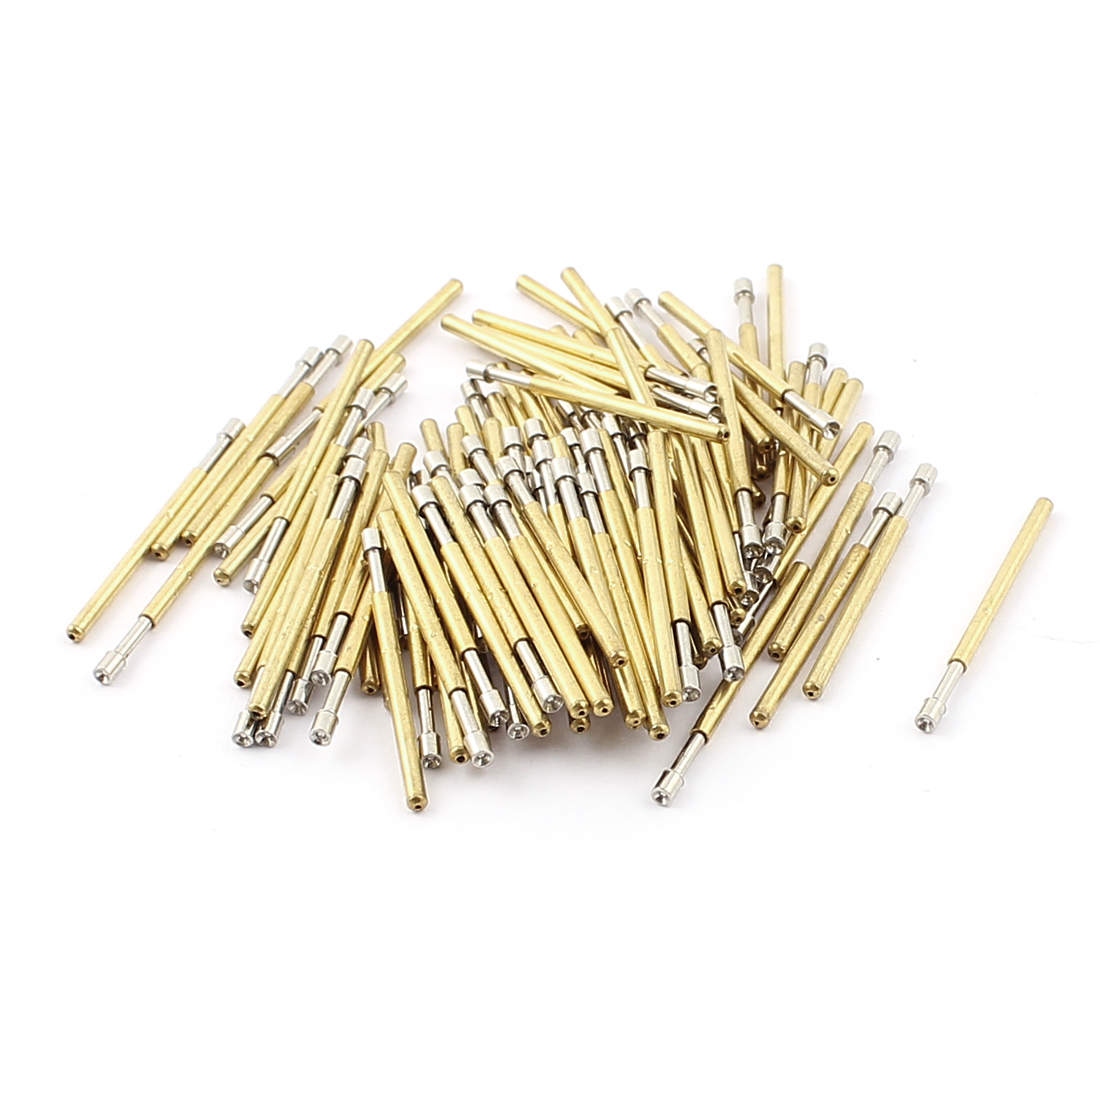 100 Pcs P160A 1.5mm Dia Concave Testing Tip Spring Loaded Test Probes Contact Pin 25mm Length